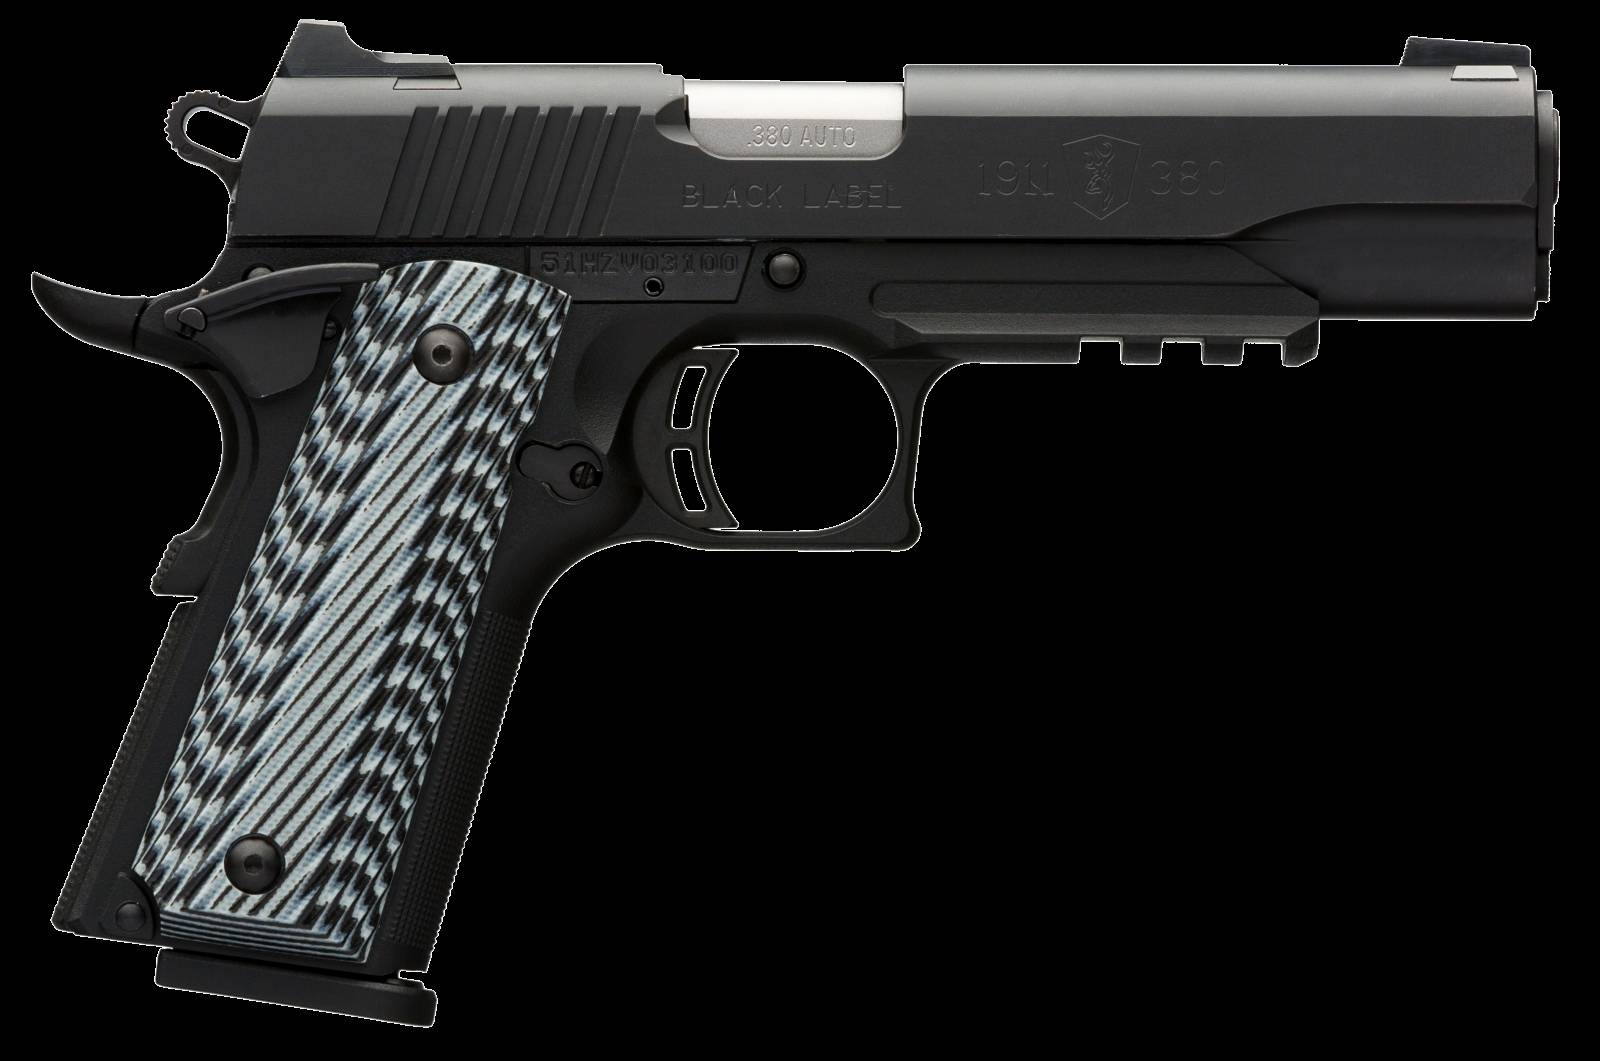 Browning 051907492 1911-380 Black Label Pro with Rail Single 380 Automatic Colt Pistol (ACP) 4.25